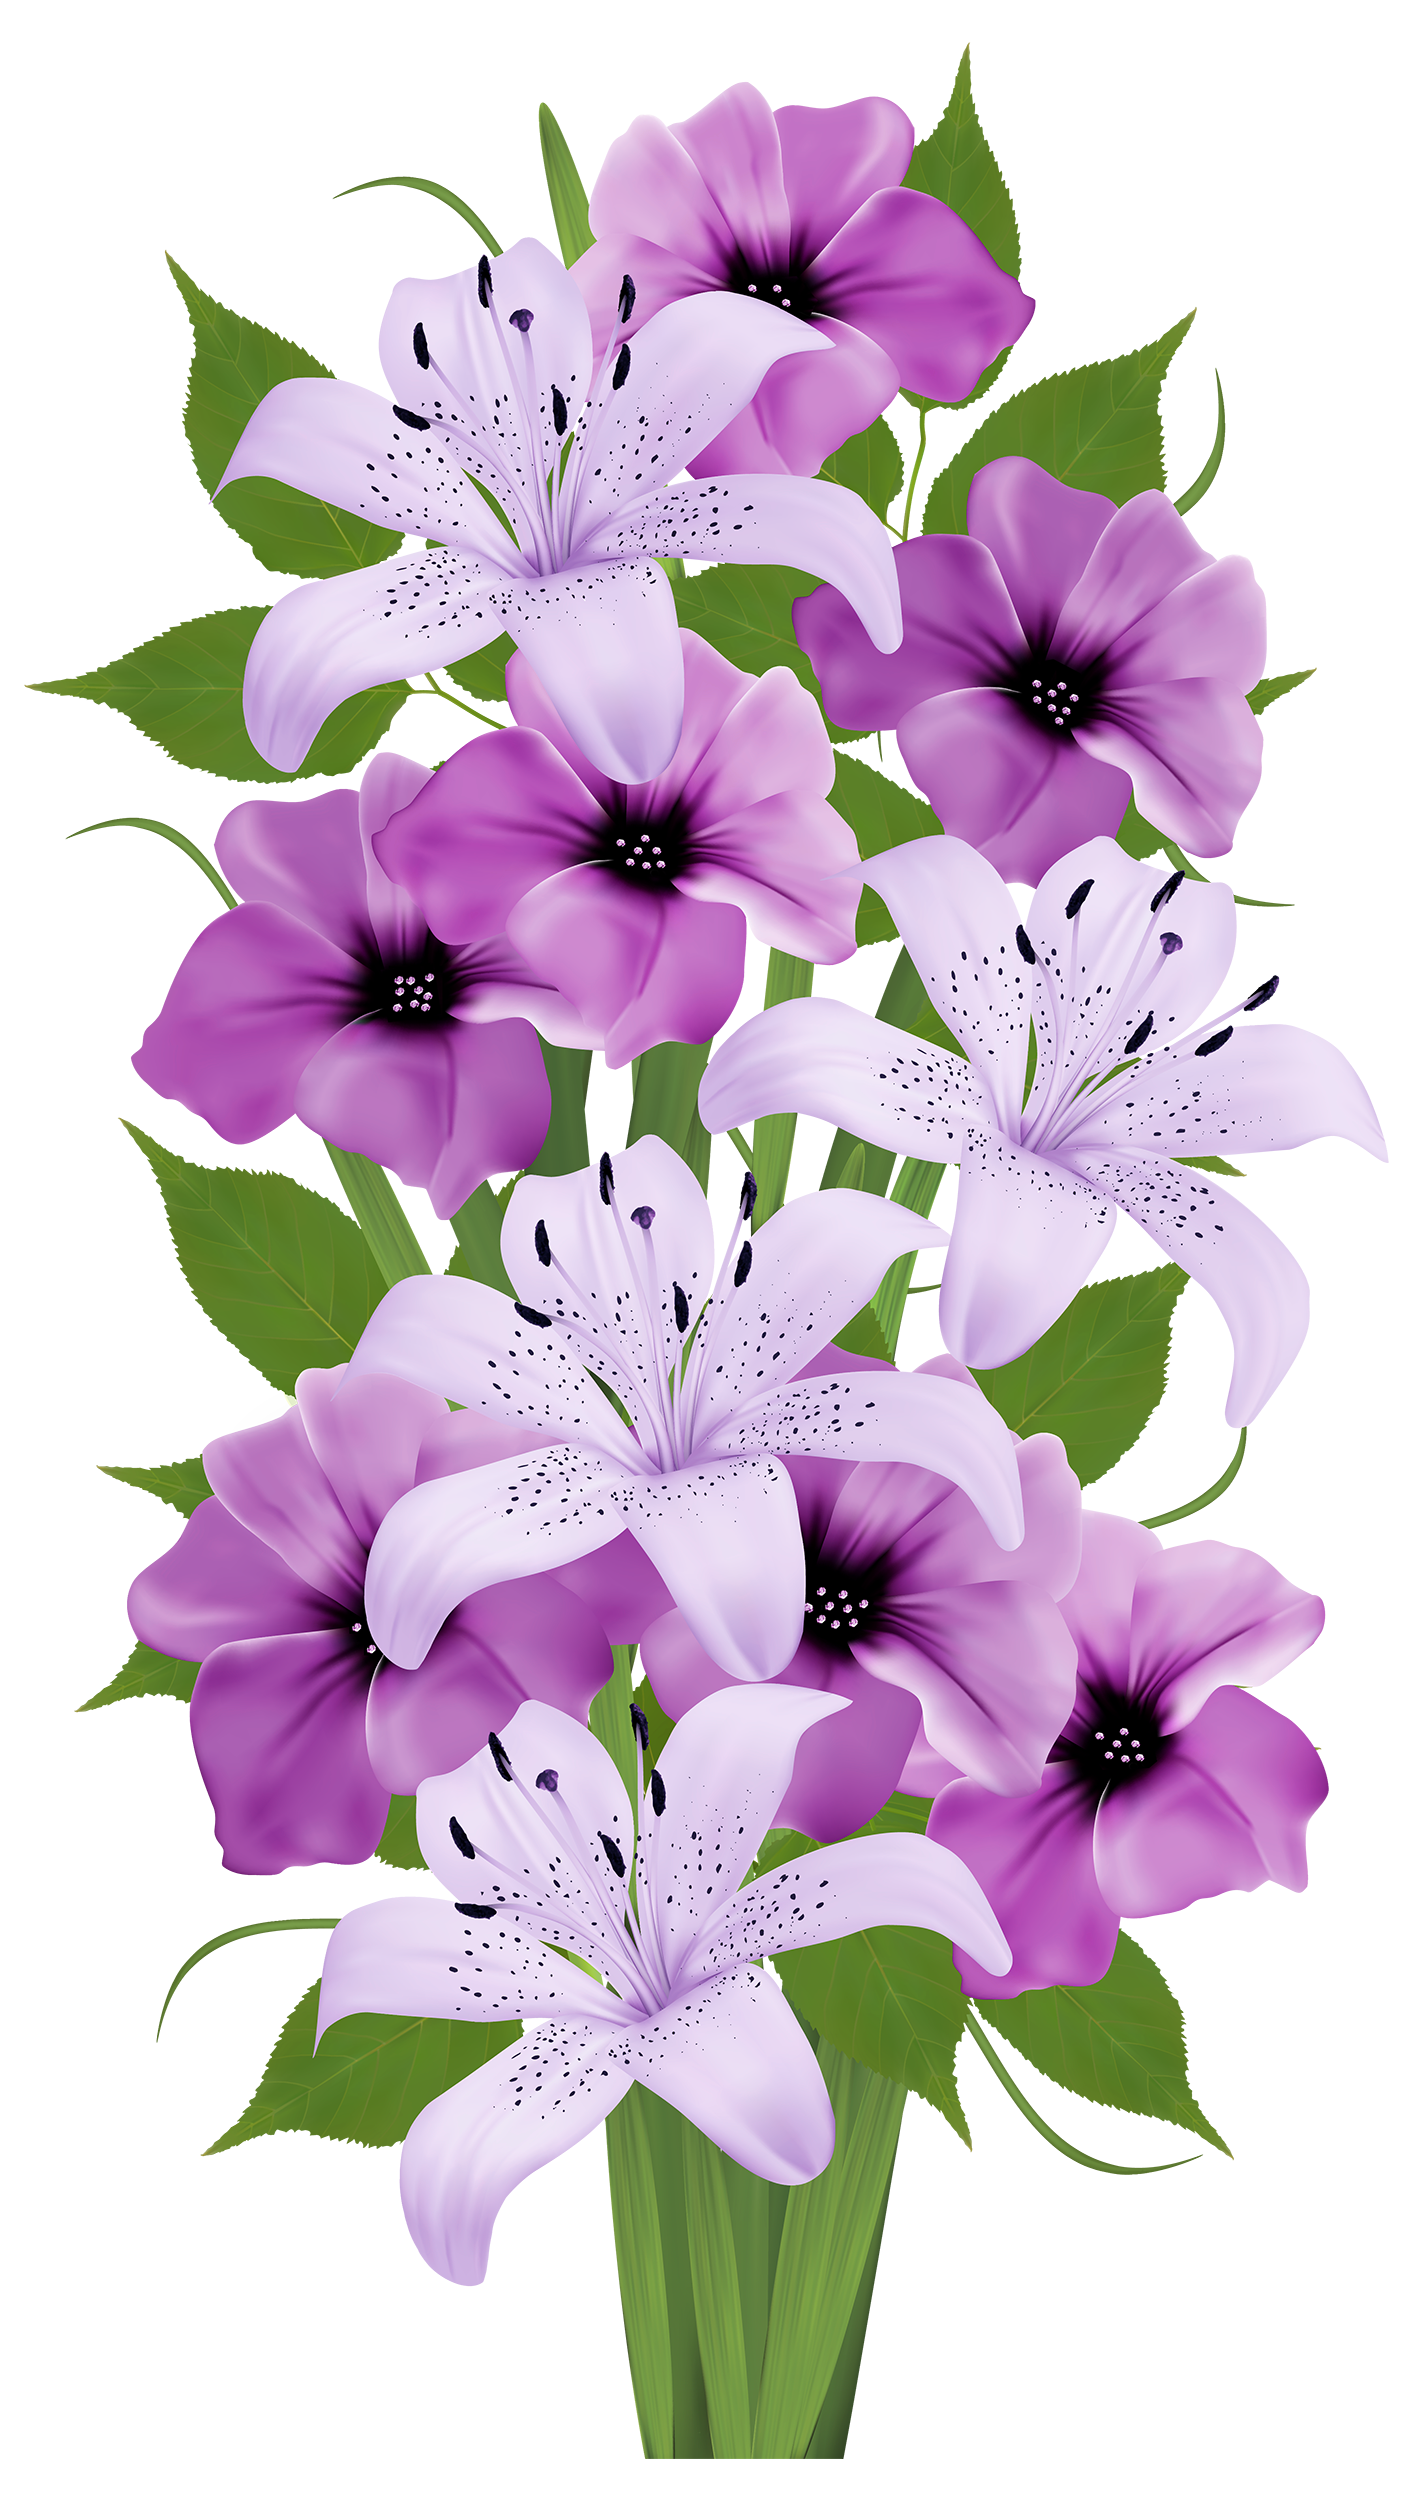 Vintage flower clipart purple freeuse download Purple Lilies Bouquet | Clip Art Everyday for Cards, Scrapbooking ... freeuse download